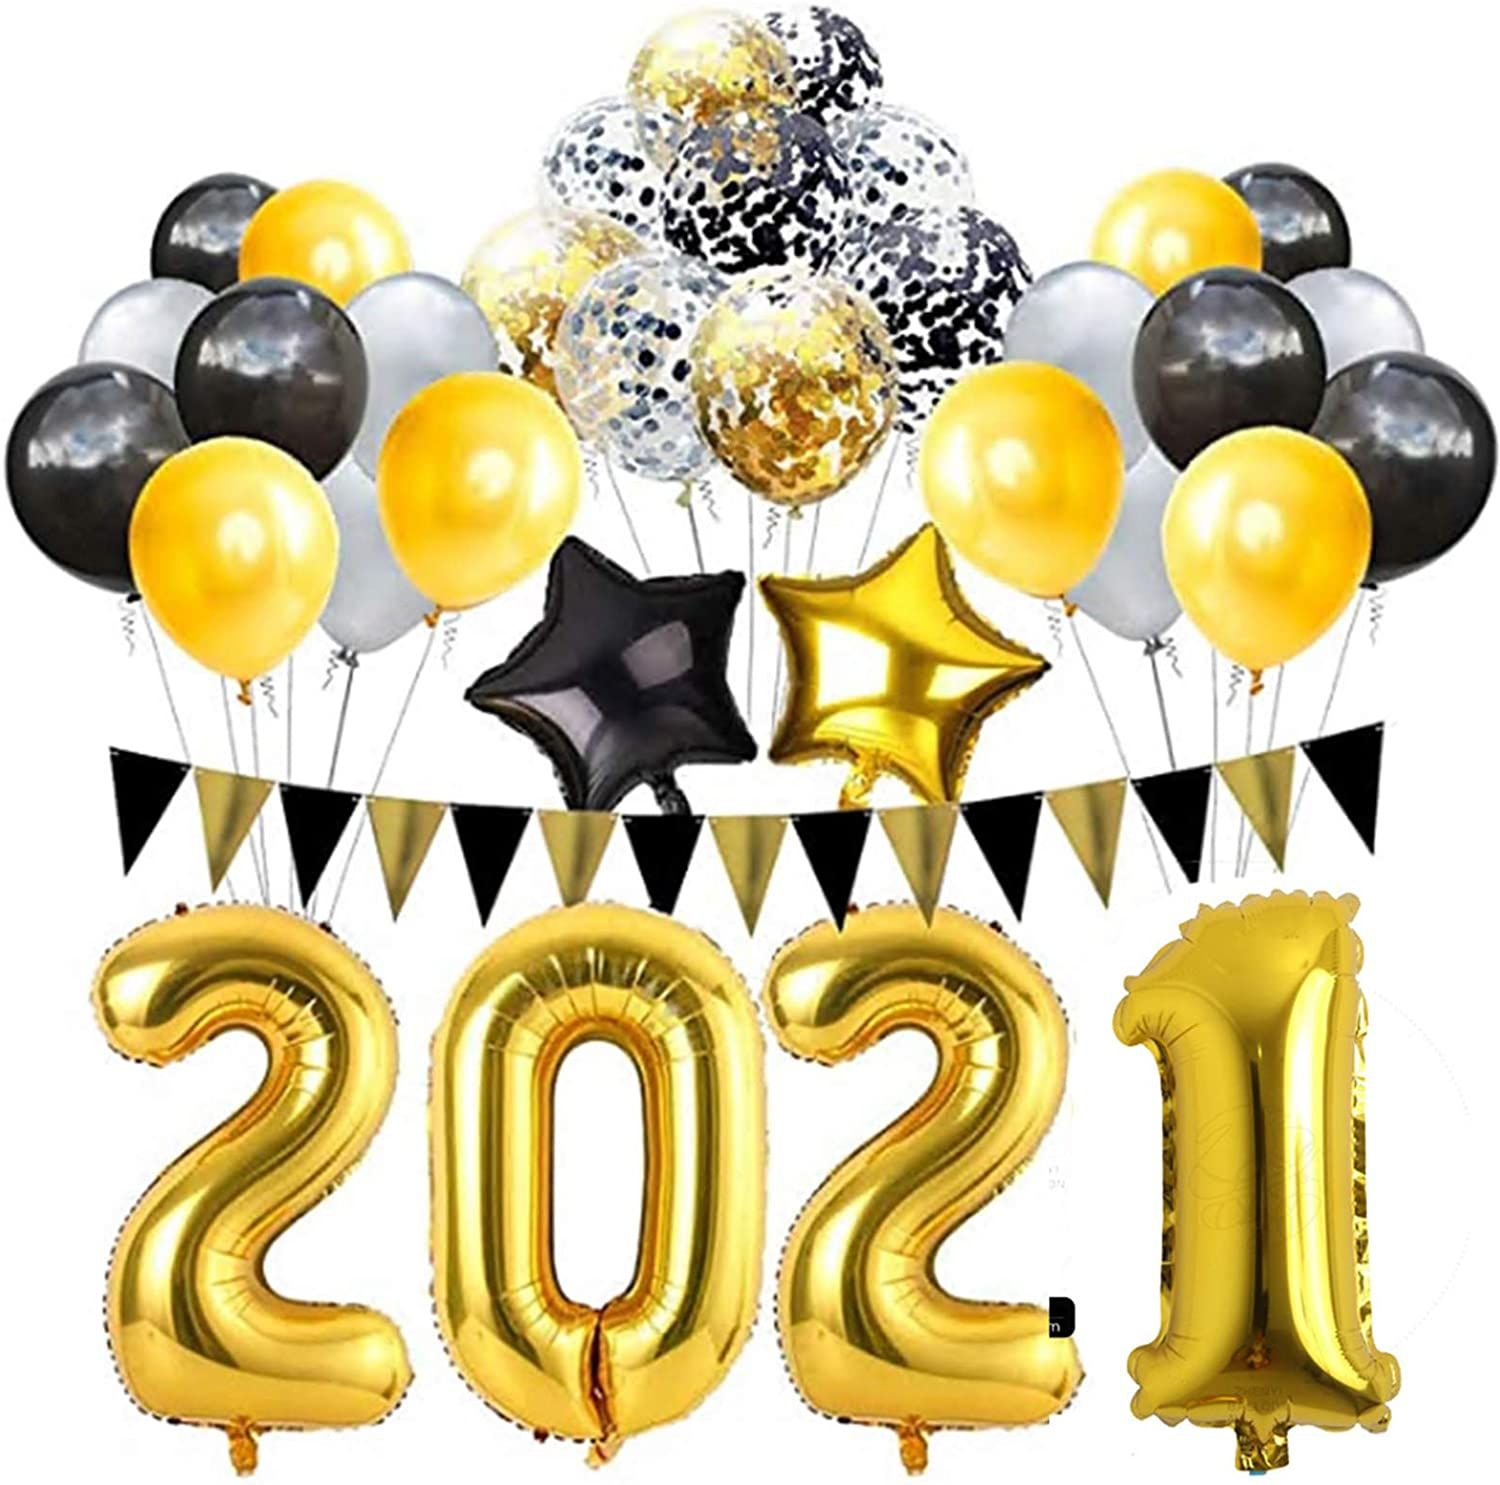 New Year Graduation Party Supplies Black And Gold Balloons Party Balloons 2021 new year balloons and gift